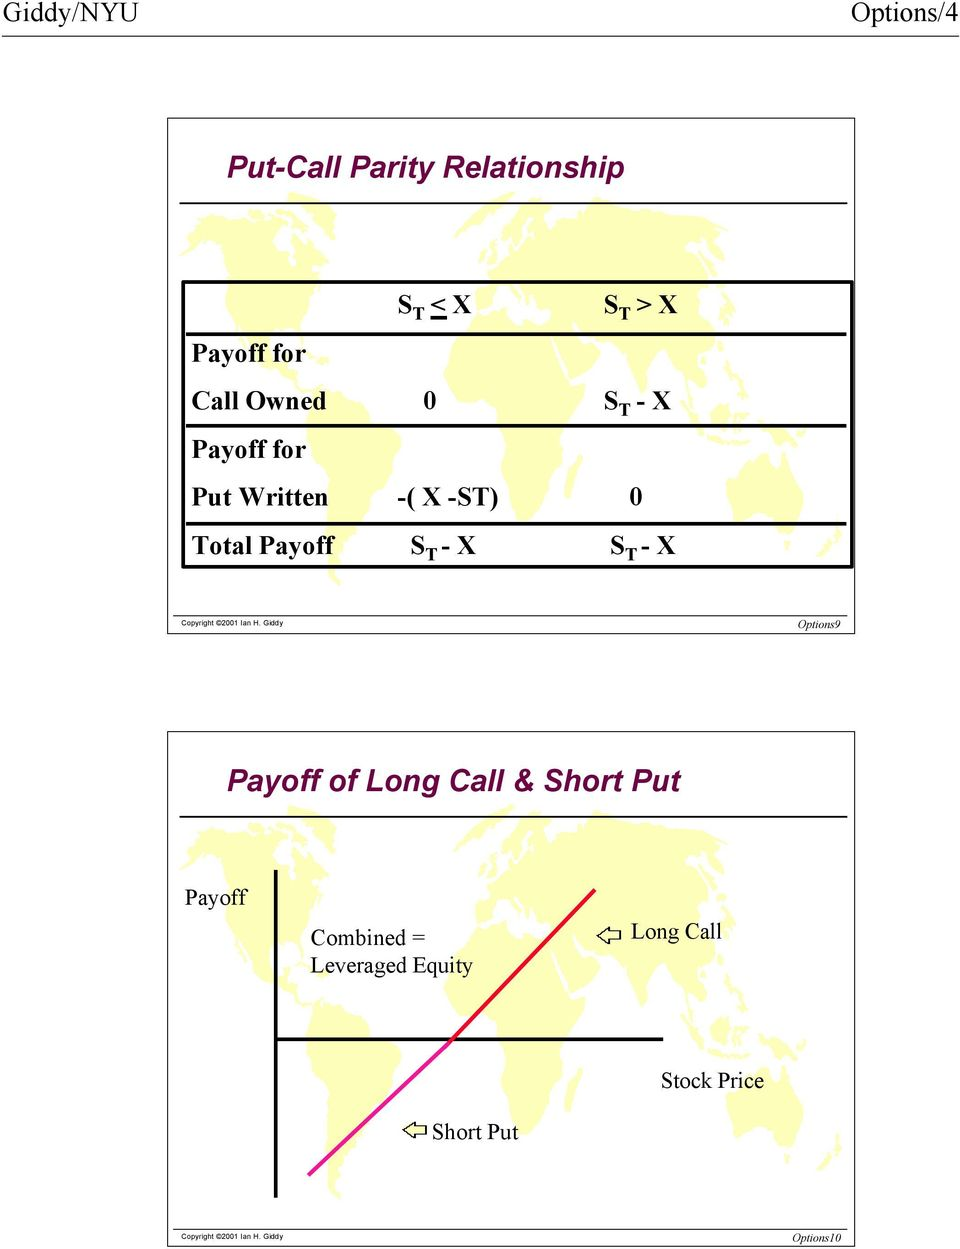 Payoff S T - X S T - X Options9 Payoff of Long Call & Short Put